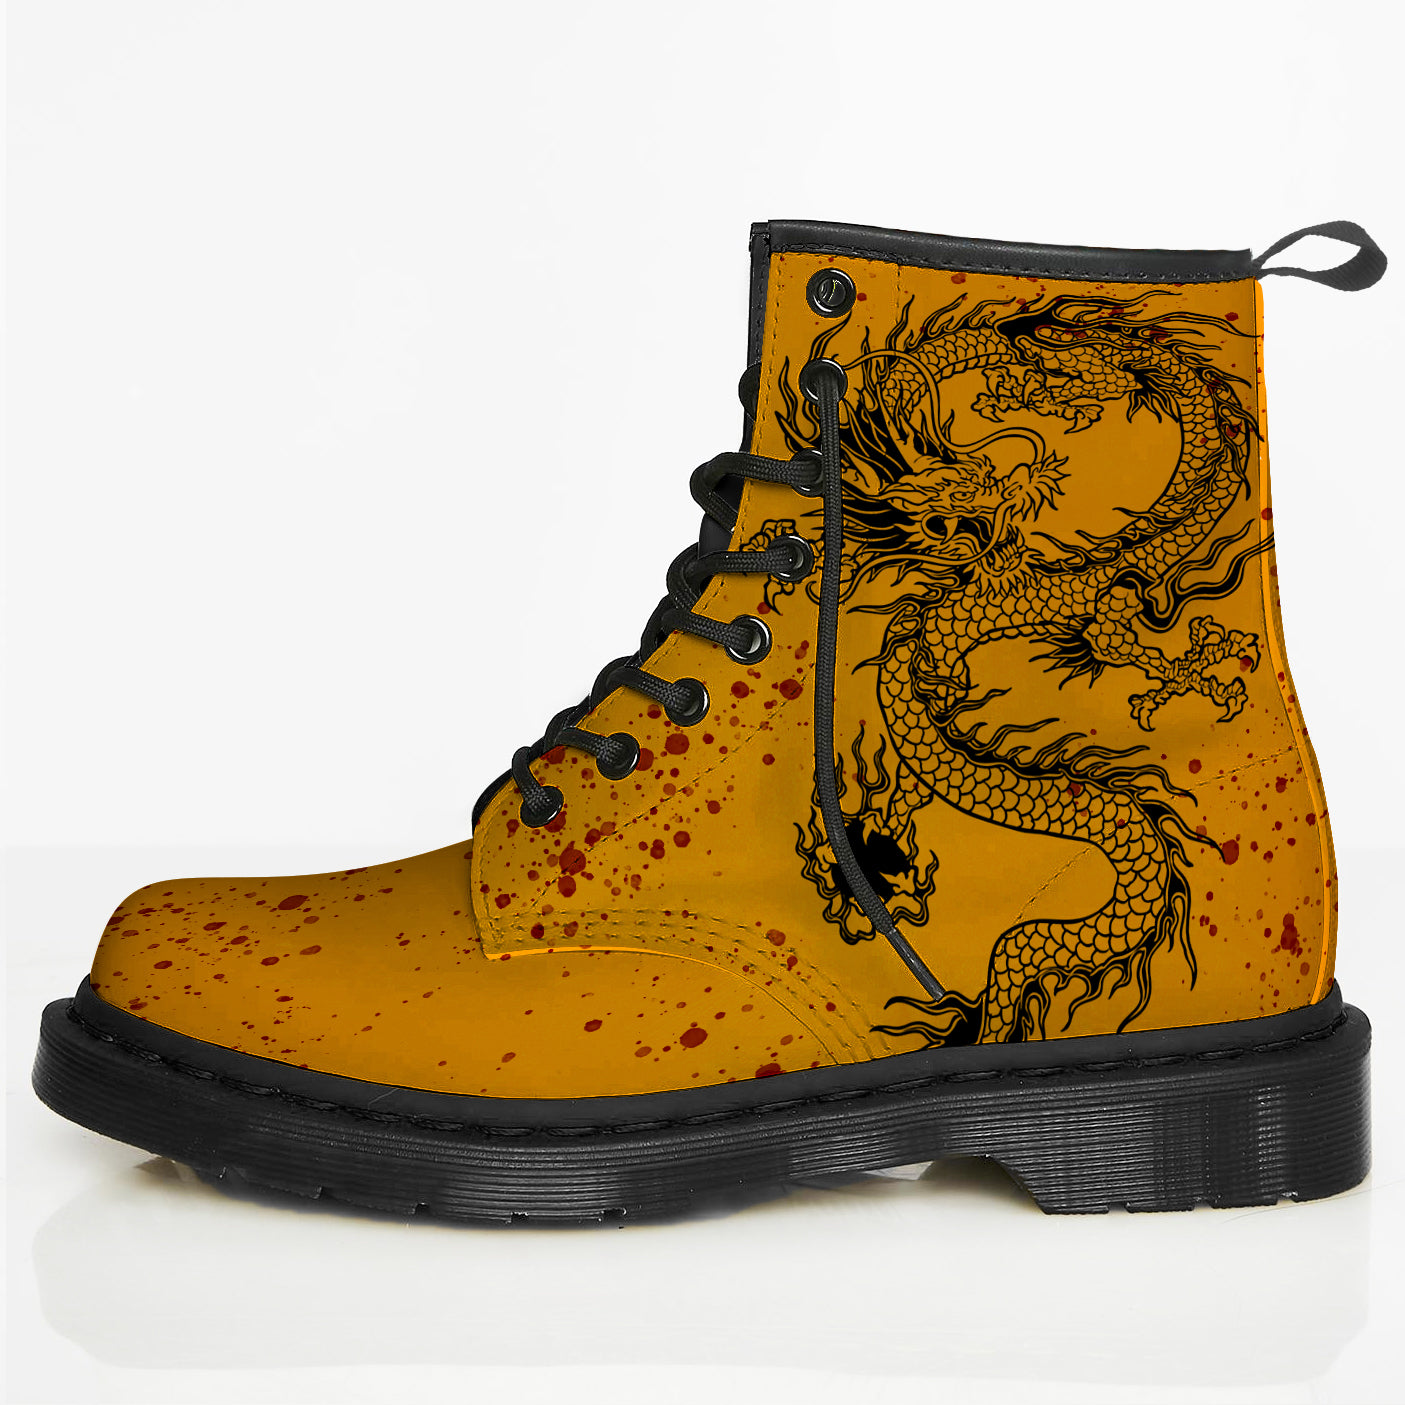 Bruce Lee Boots